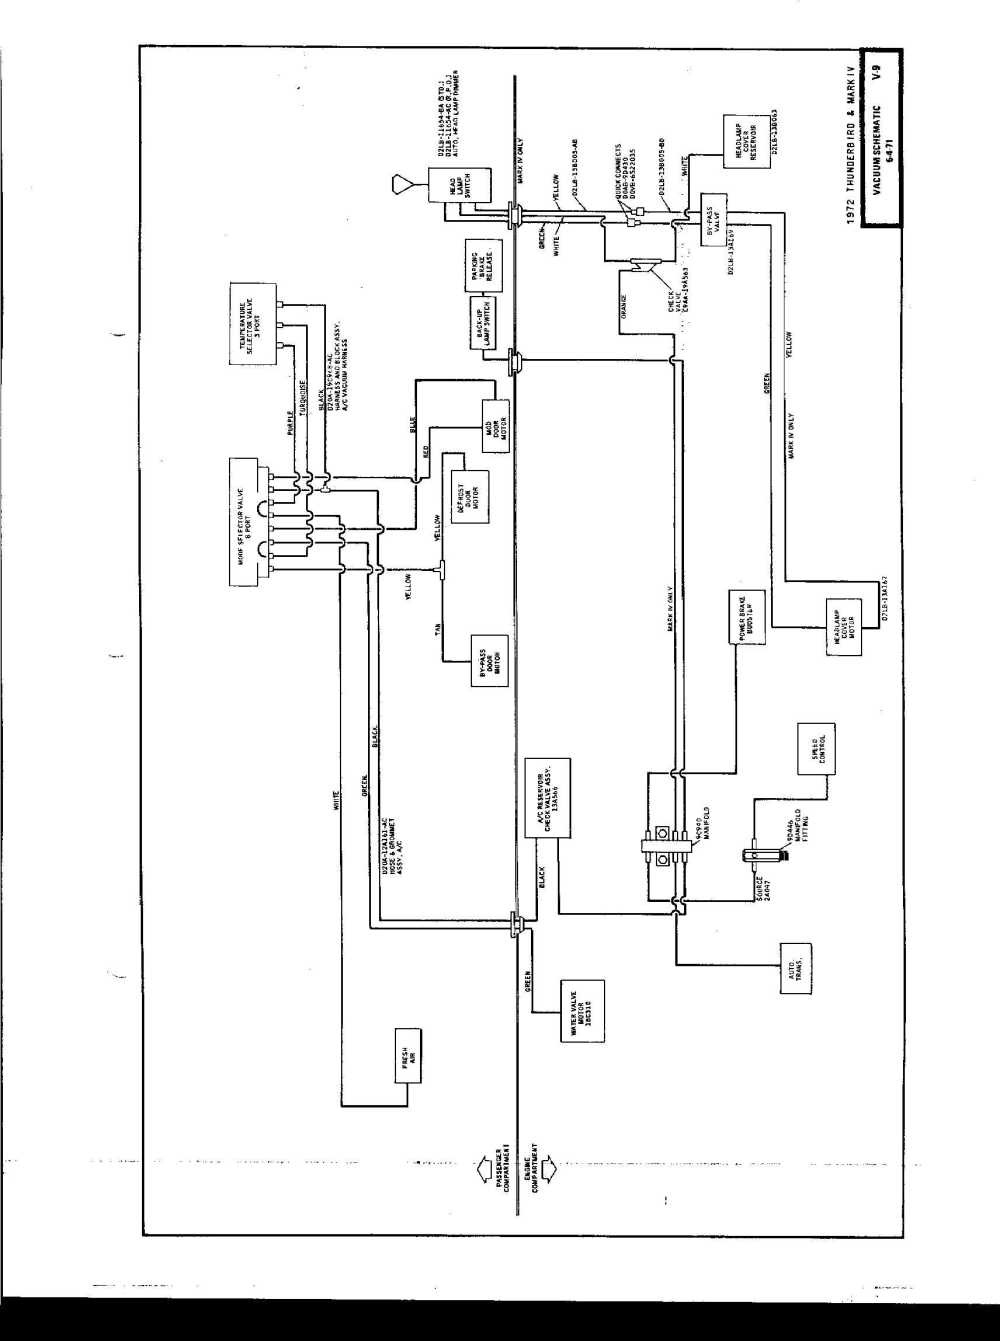 medium resolution of 78 vacuum diagram without auto temp control